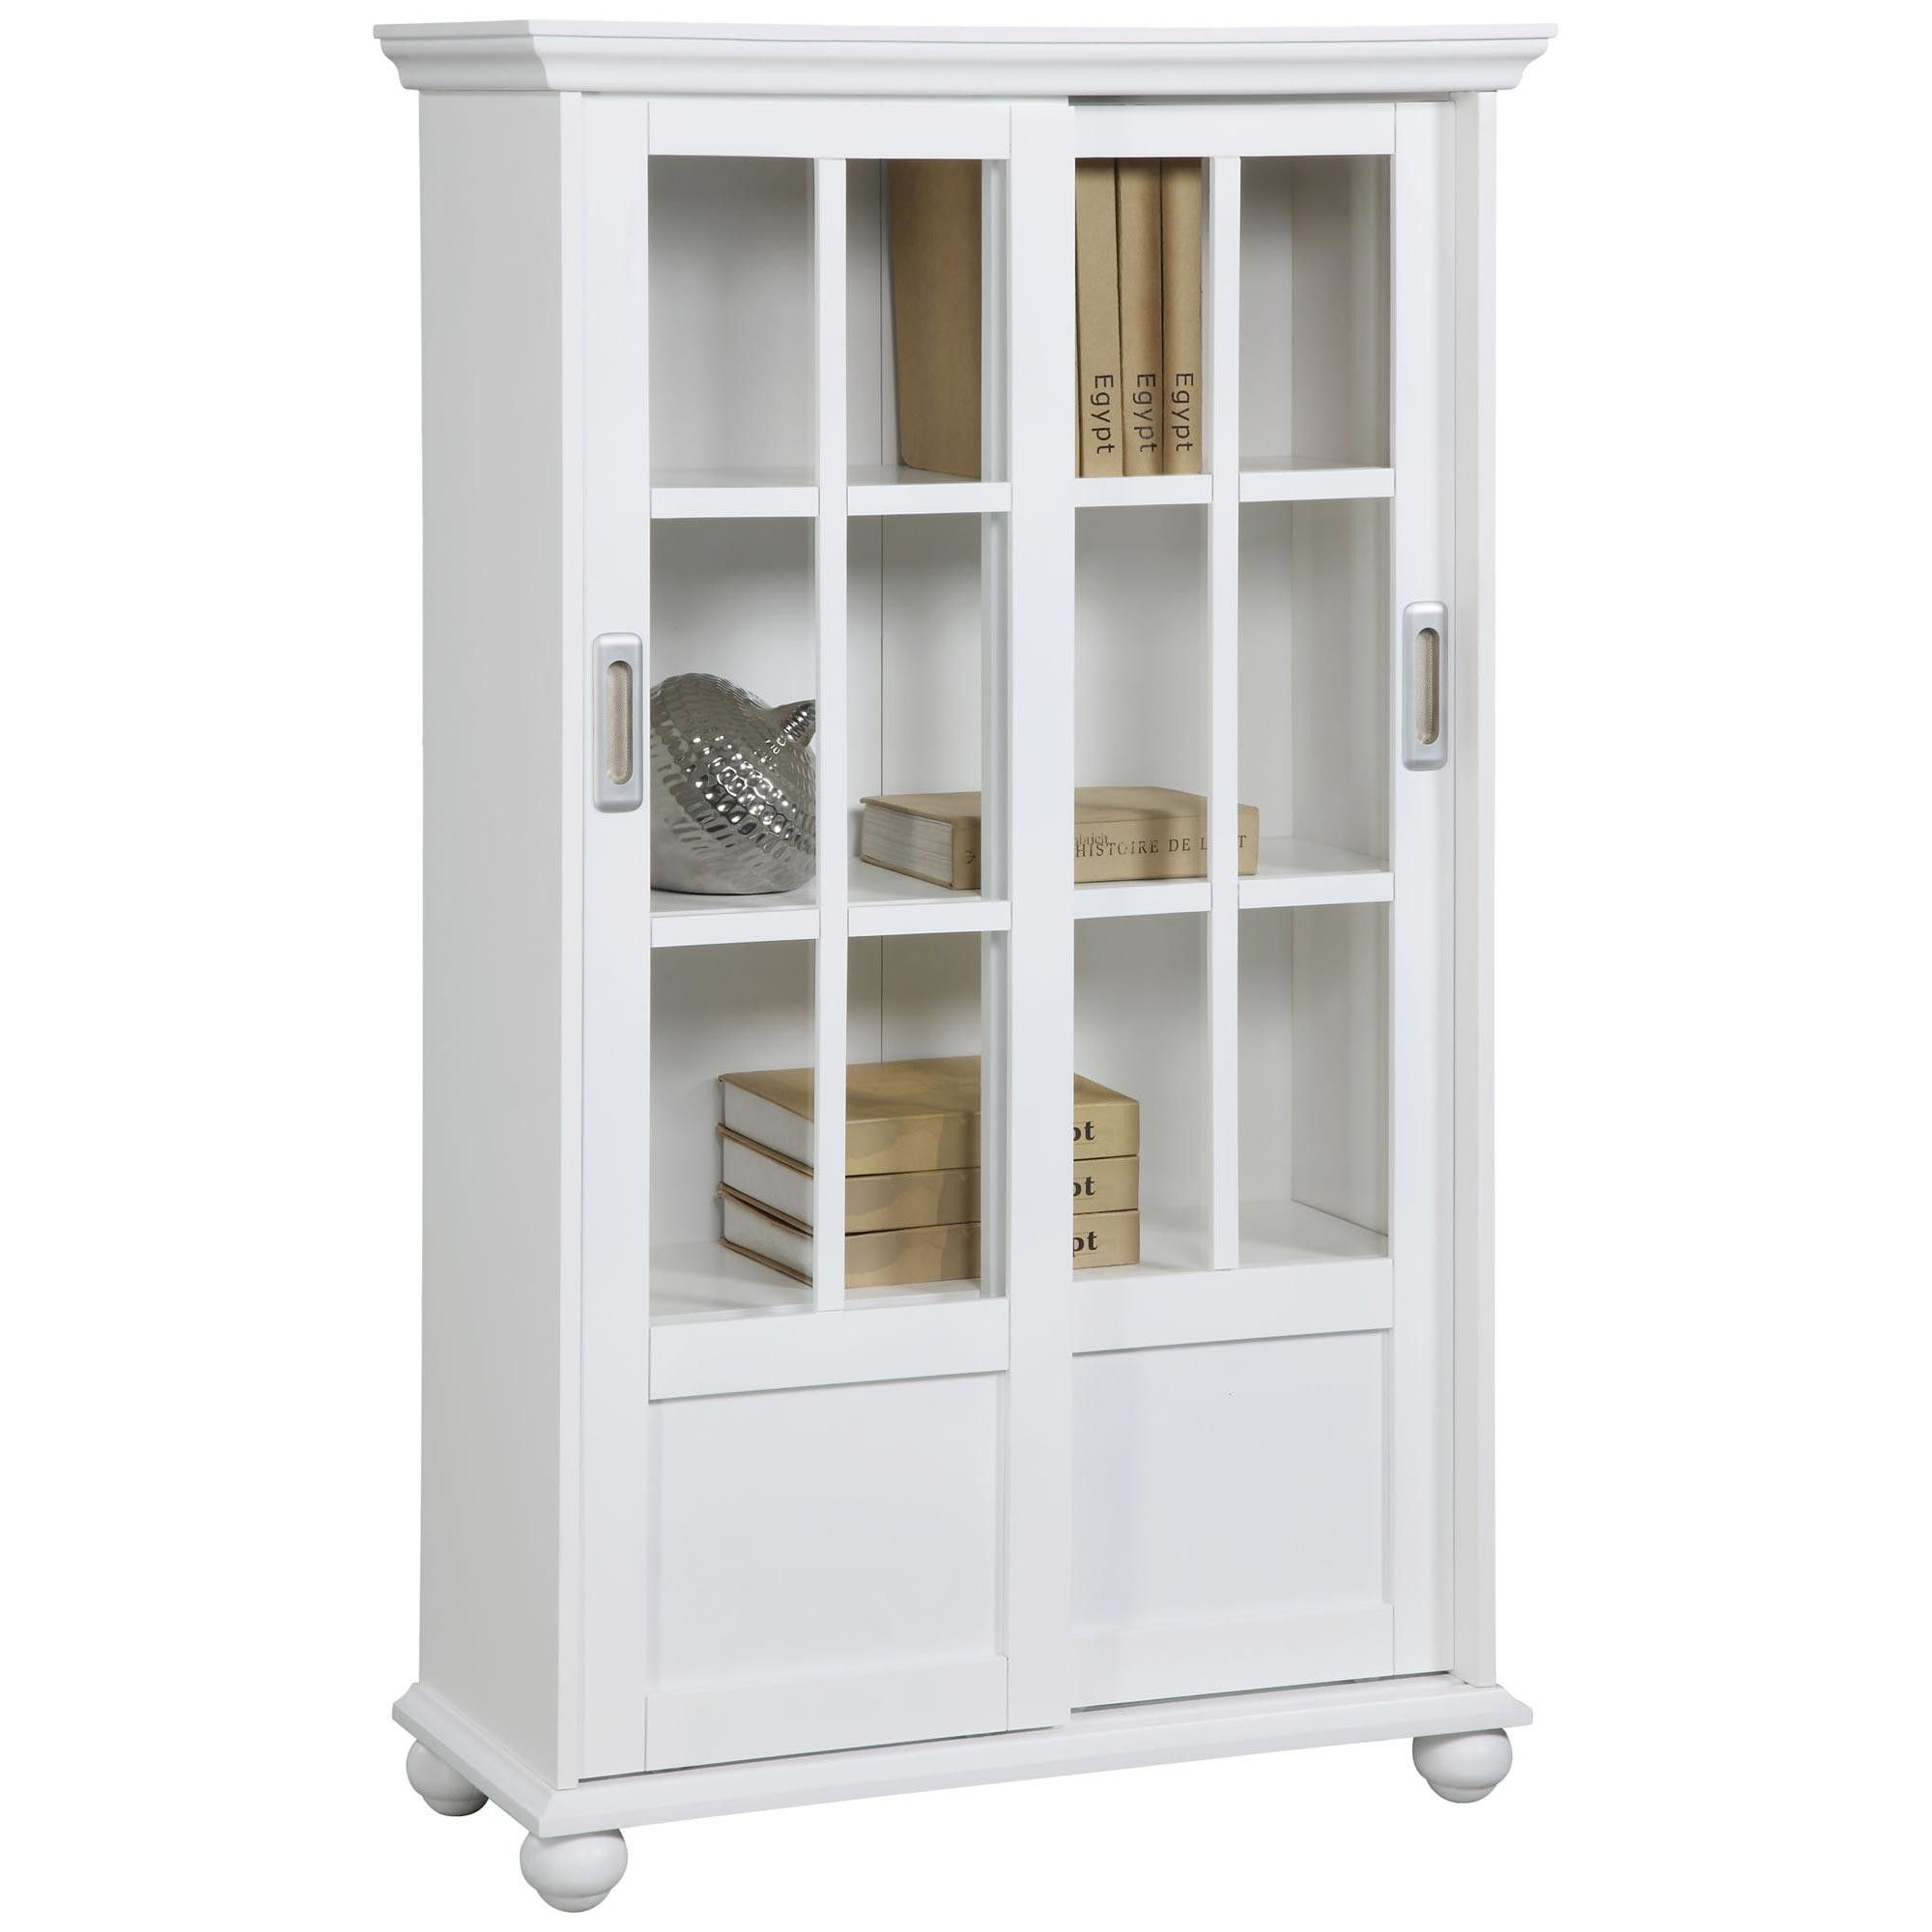 styles home doors lawyer also slanted furniture bookcase with fascinating bookshelf glass